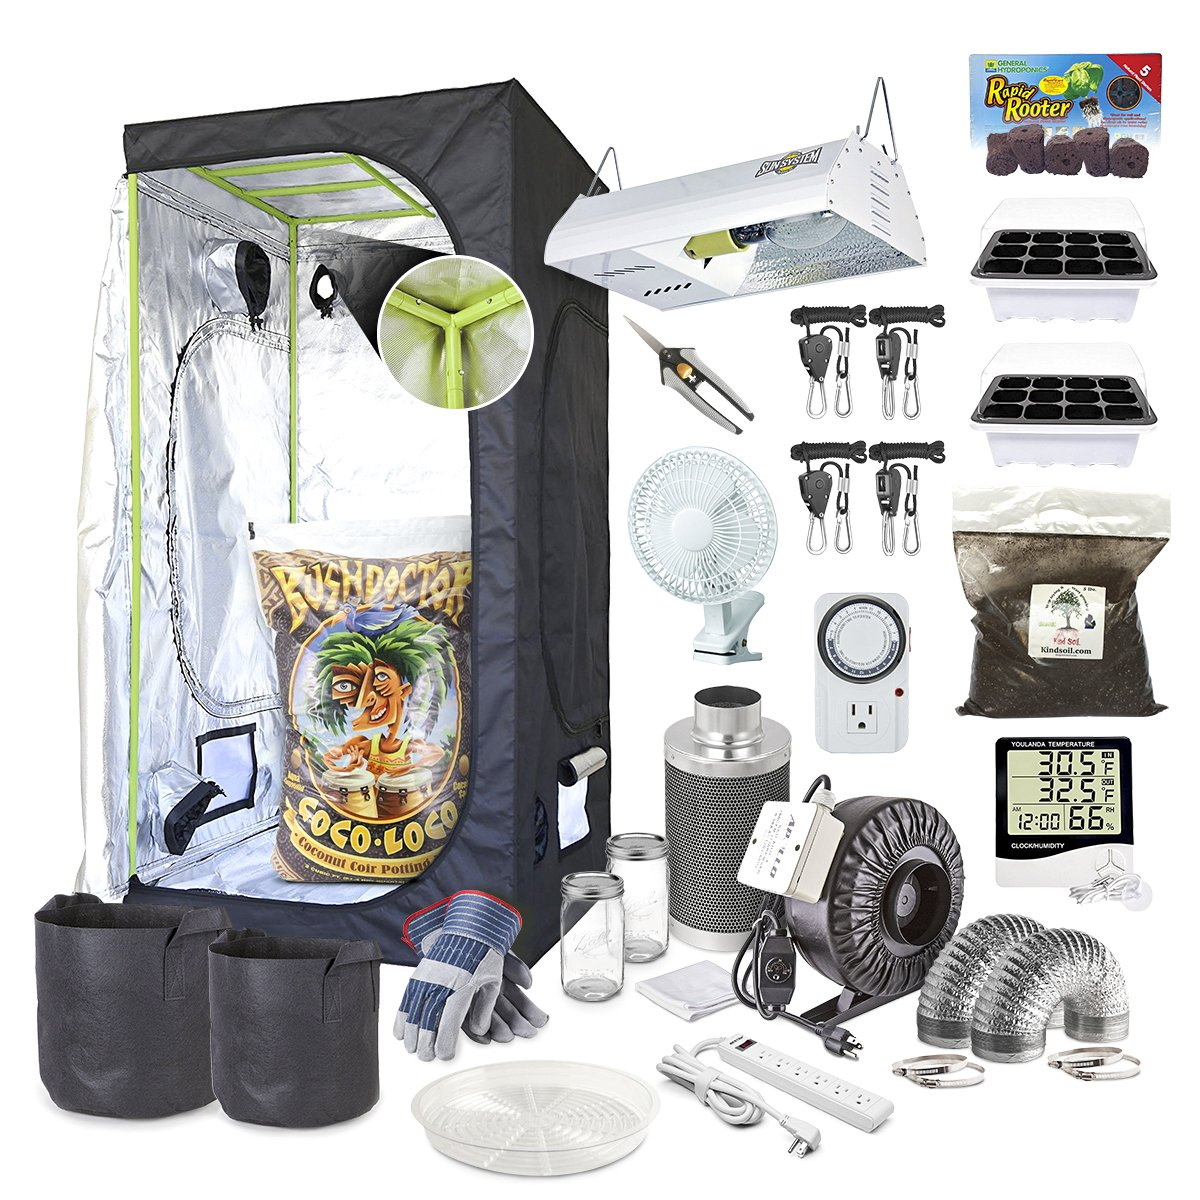 The Bud Grower 5×5- Complete Hydroponics Grow Tent Kit